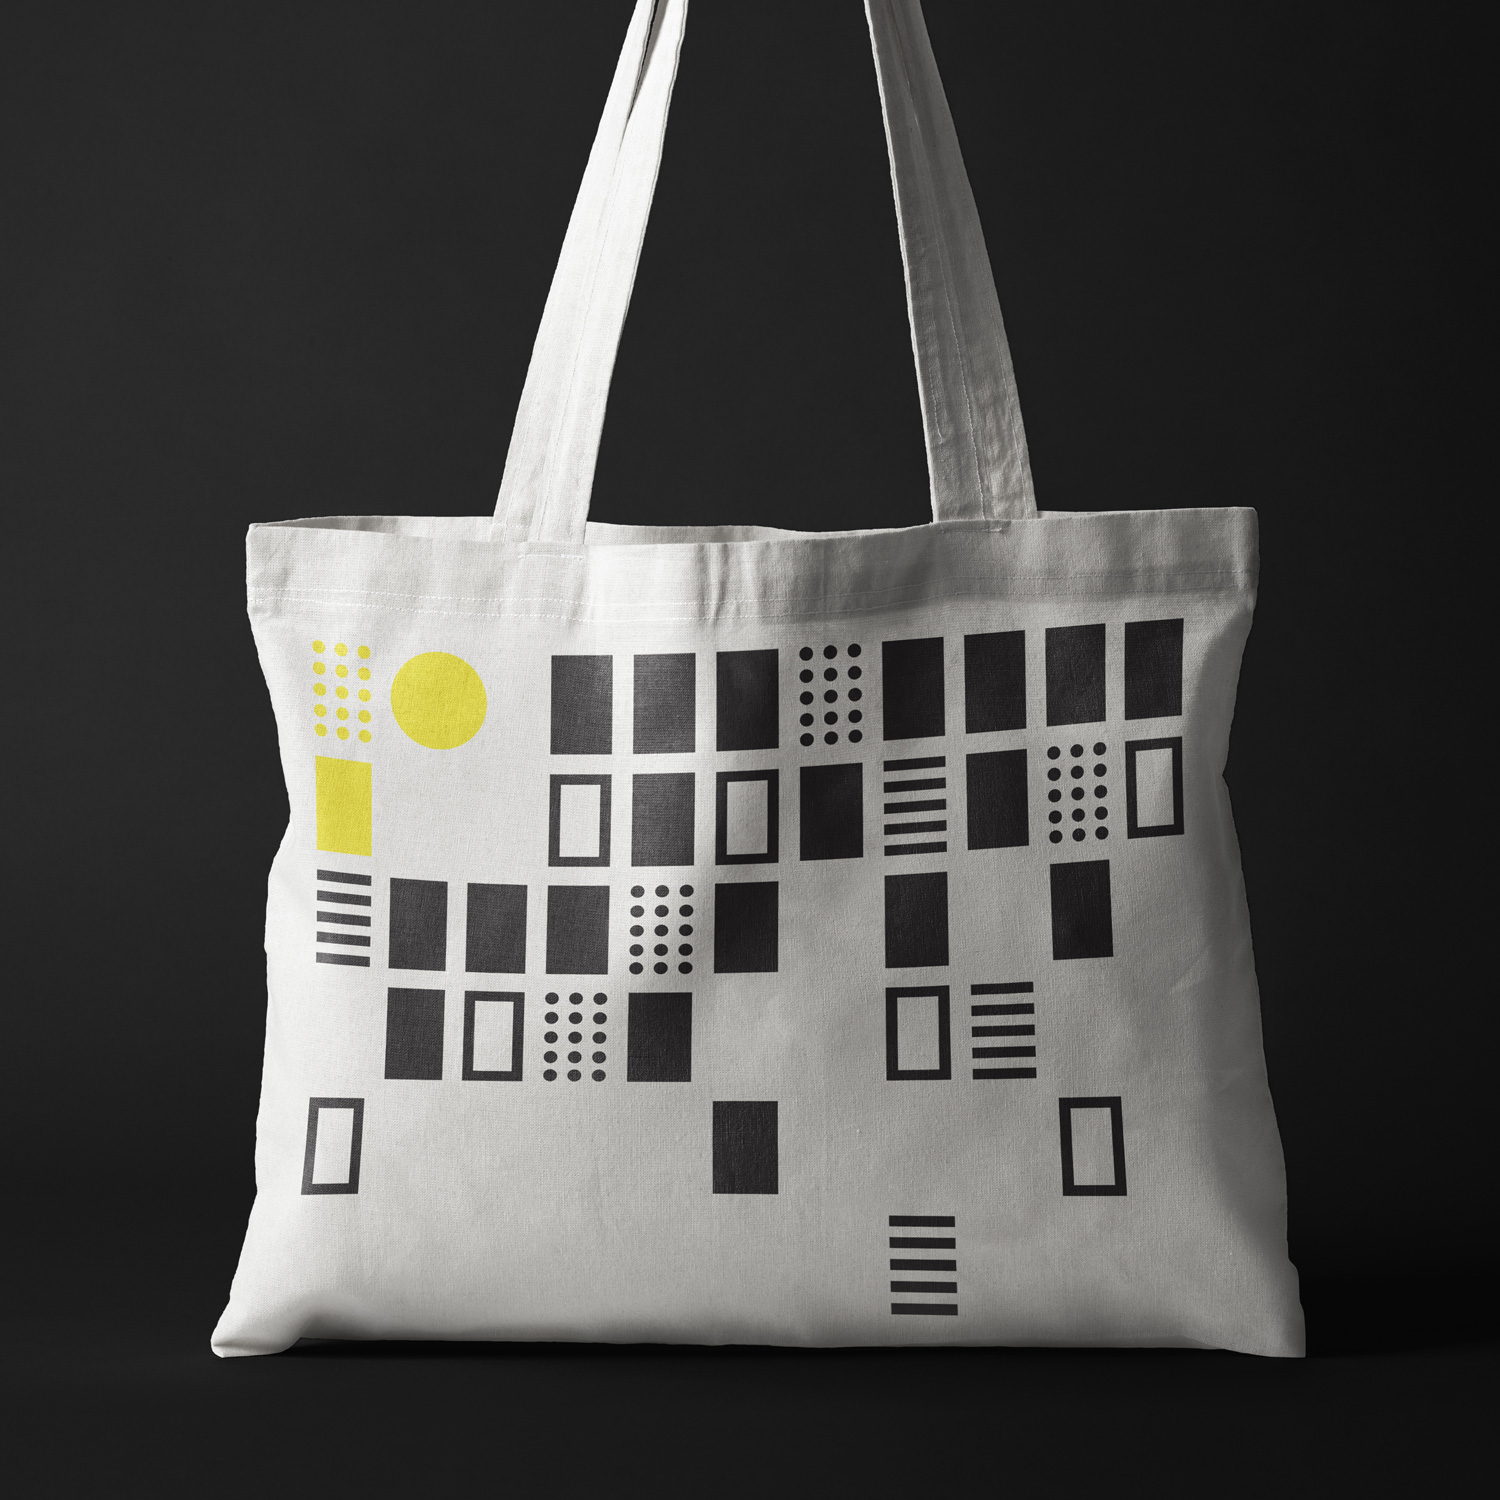 The visual identity of Rumsans with graphic elements in the colors black, white and yellow. A white tote bag with the graphic elements printed on it.